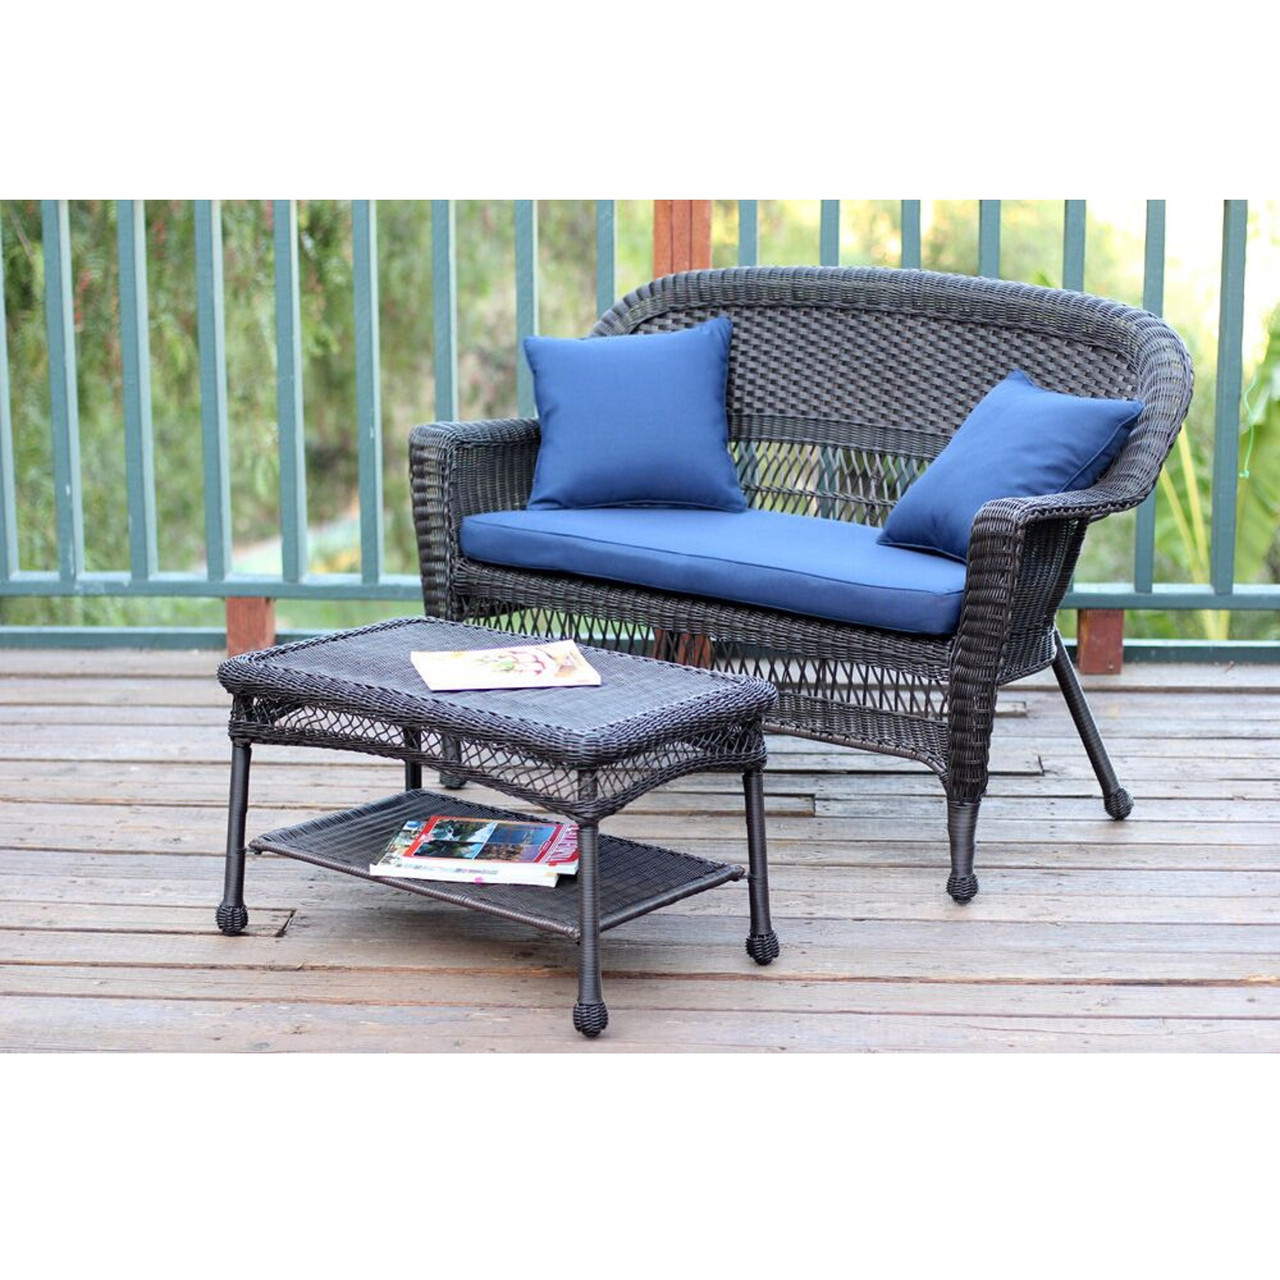 2 Piece Espresso Resin Wicker Patio Loveseat And Coffee Table Set   Blue  Cushion   31556097